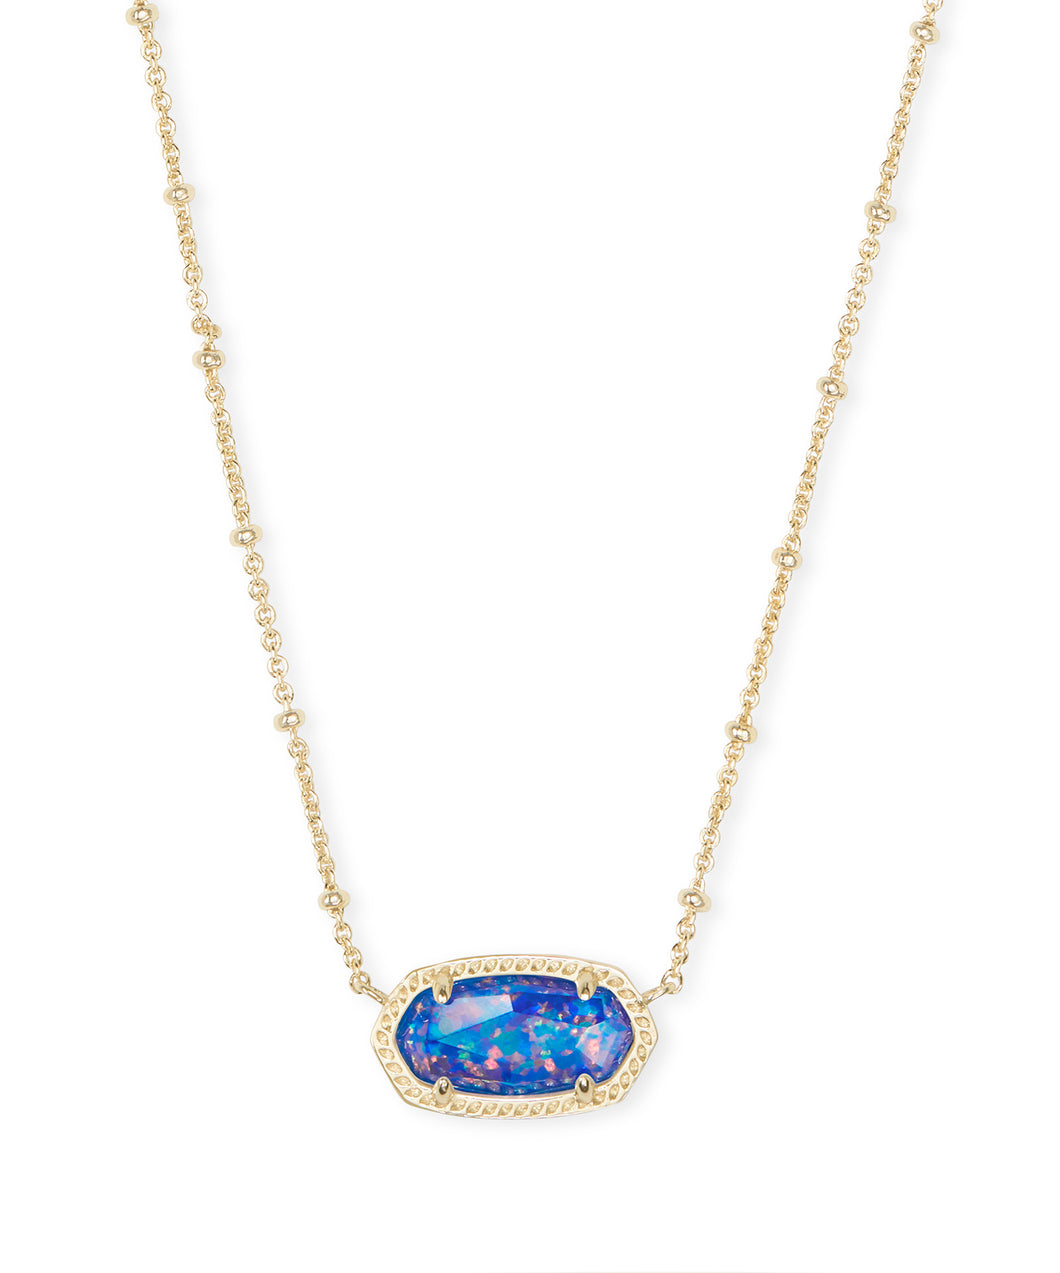 Elisa Gold Satellite Pendant Necklace in Indigo Kyocera Opal Illusion